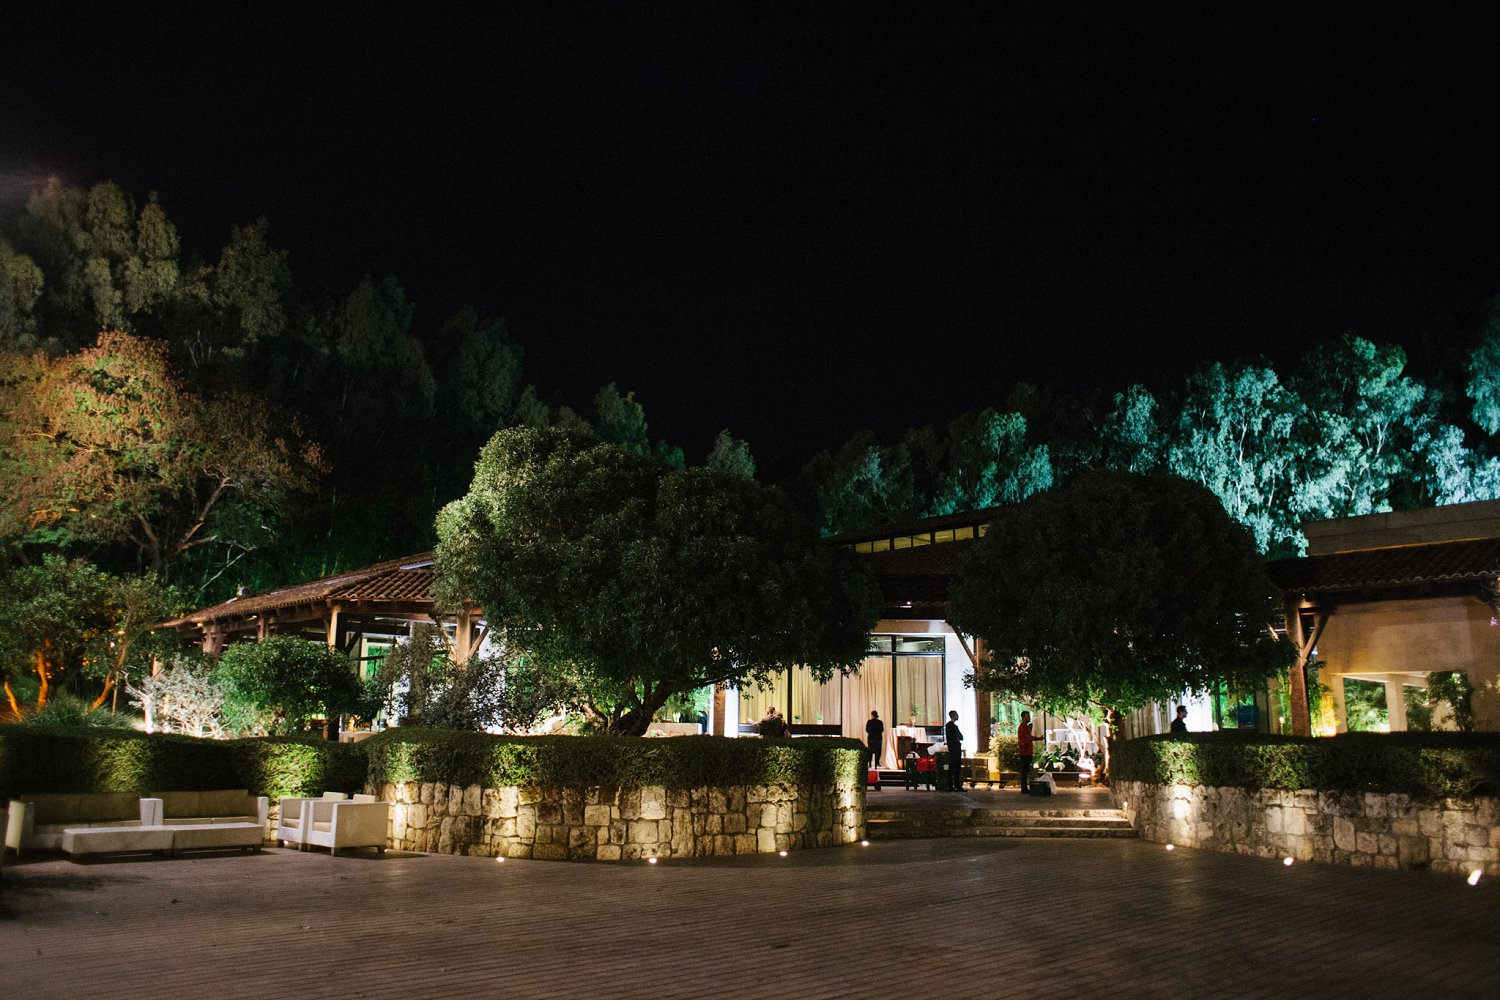 Outside of Baya'ar wedding venue at night